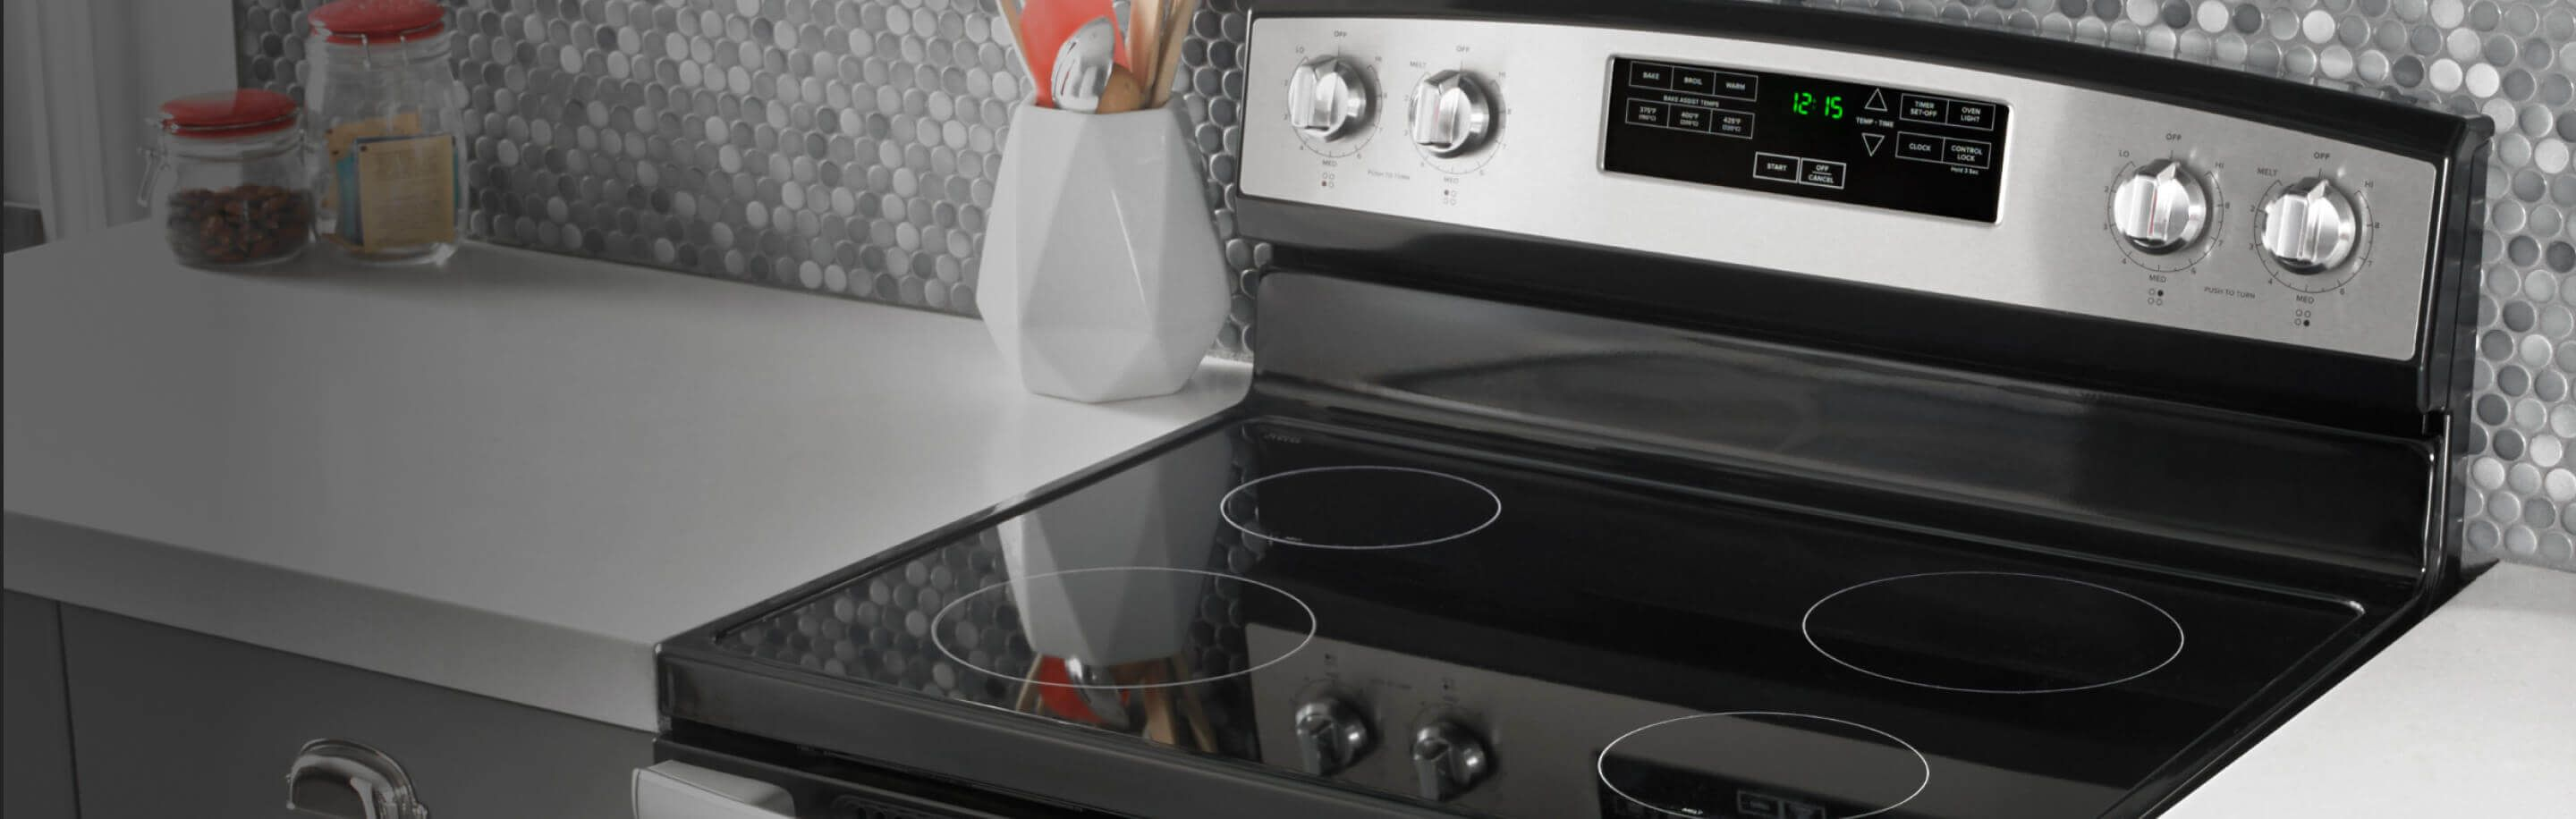 Amana® range with electric cooktop